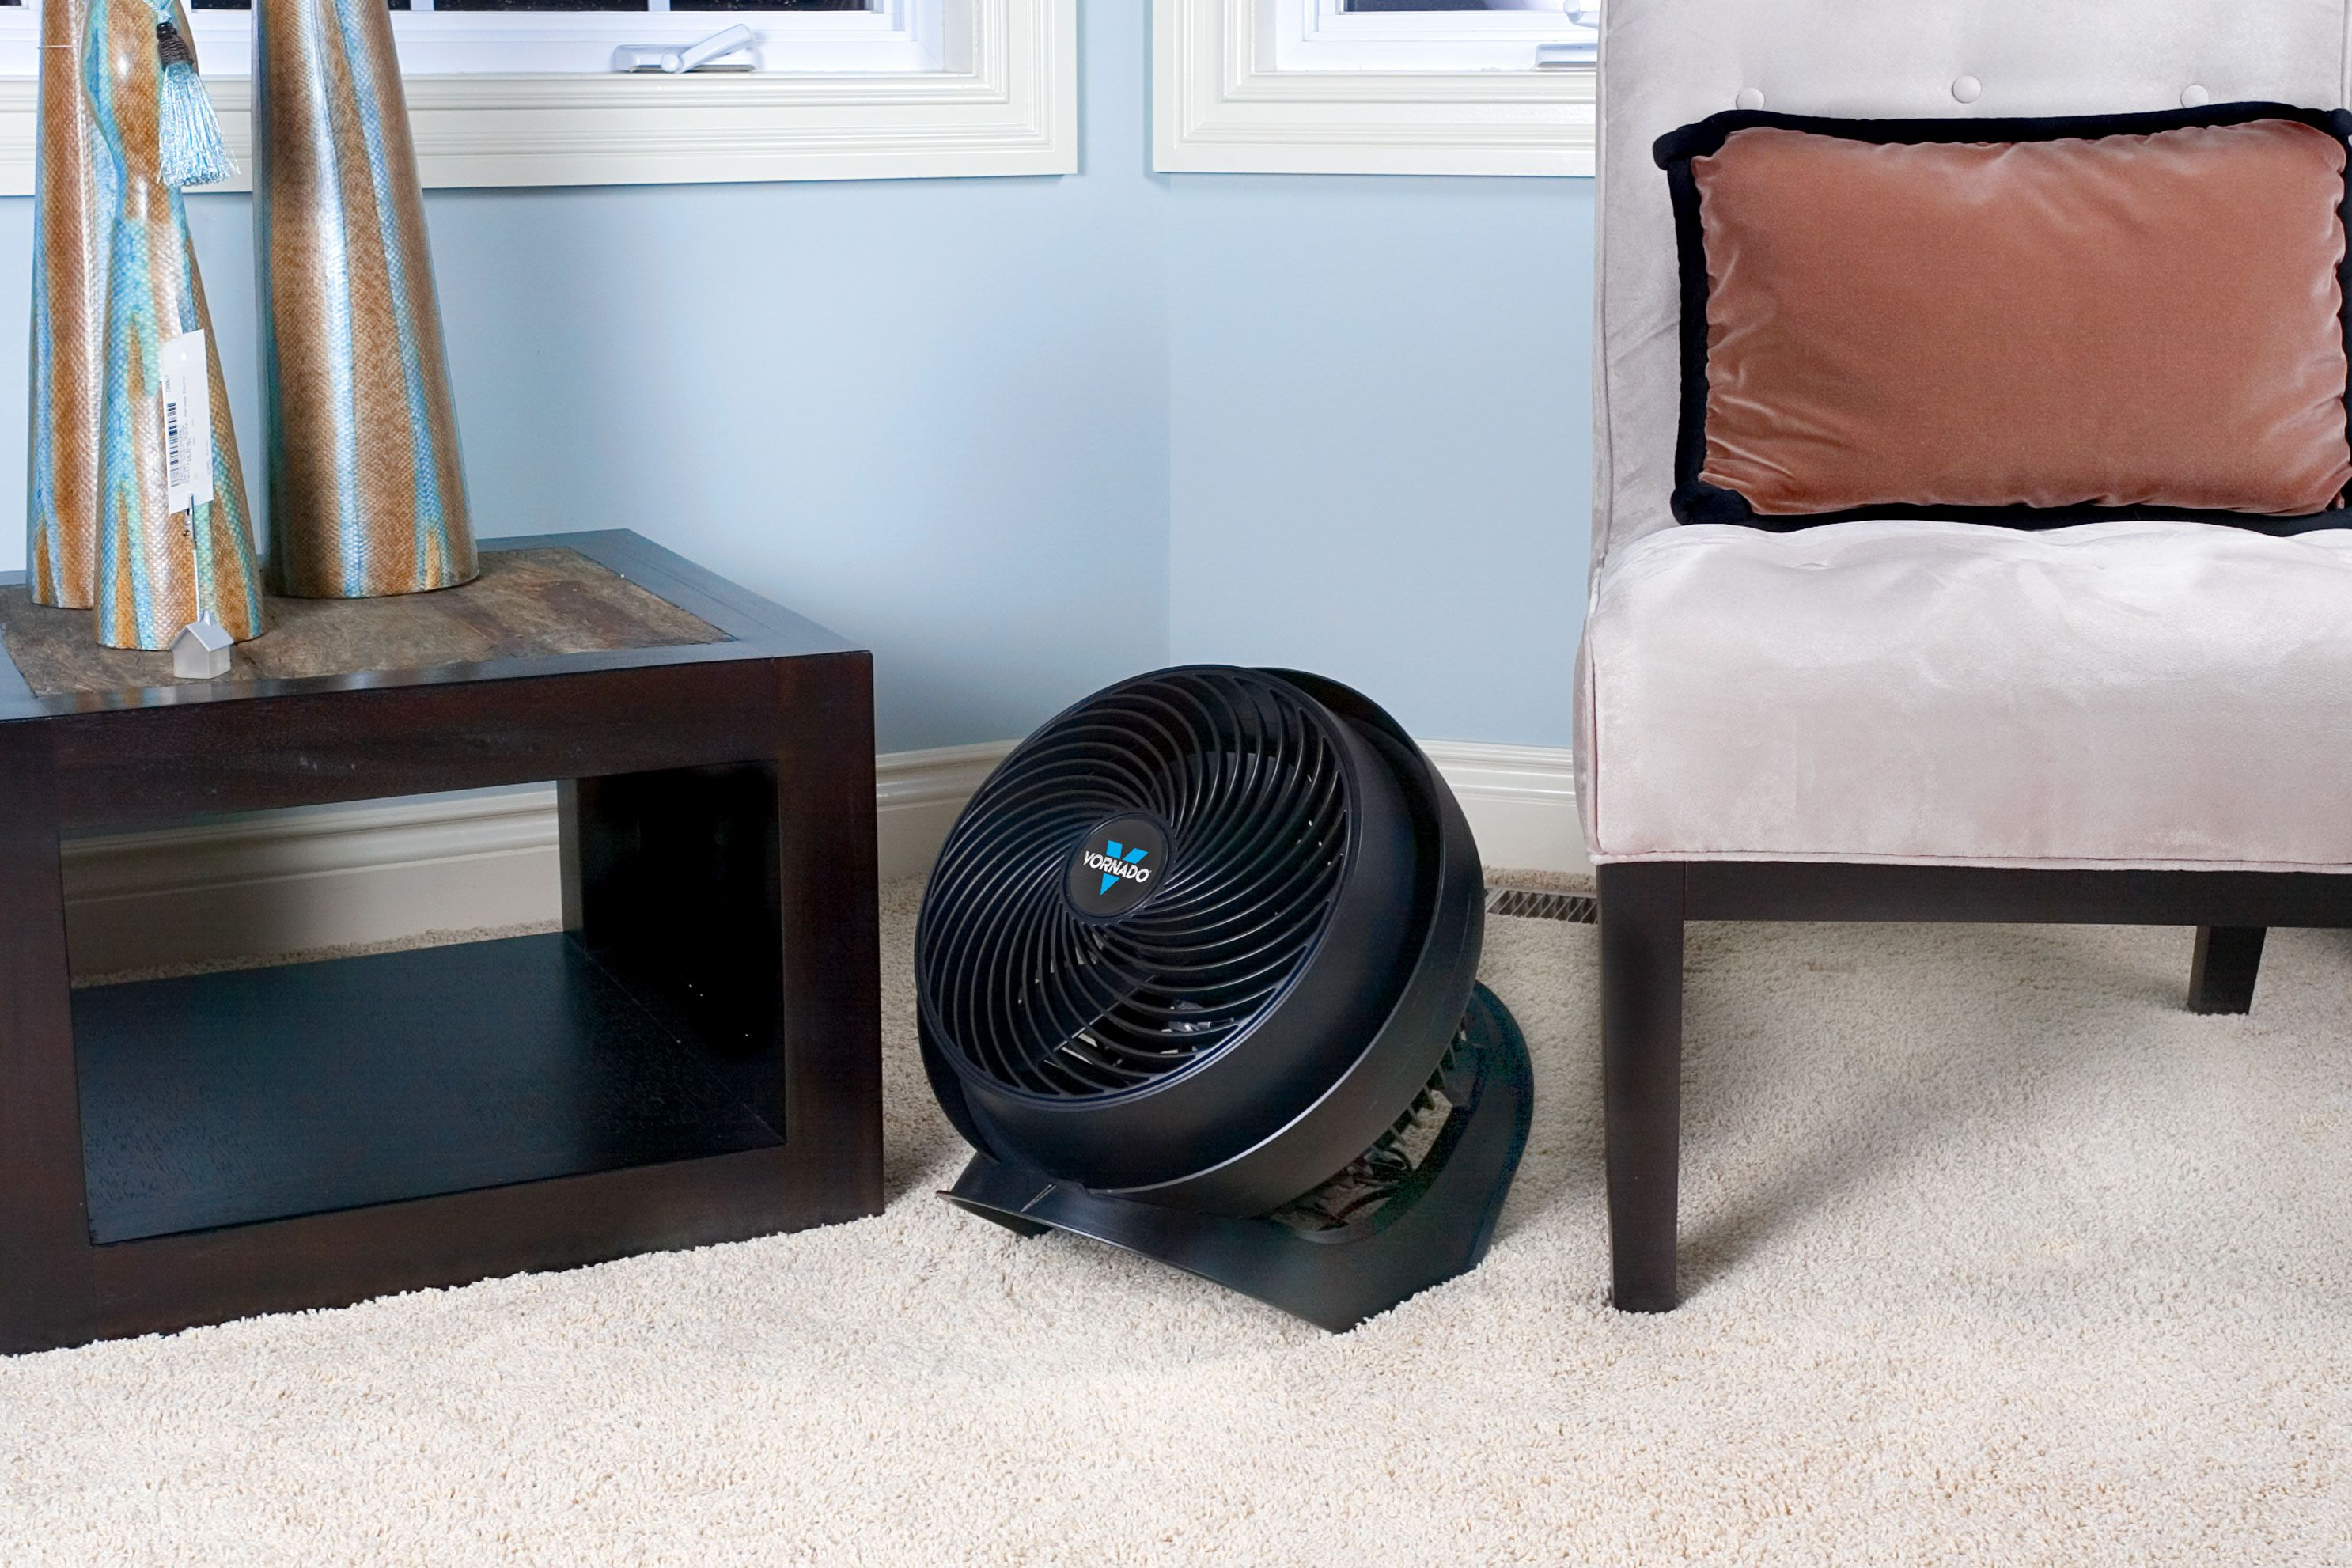 Room To Room Air Circulator : Large air circulator vornado